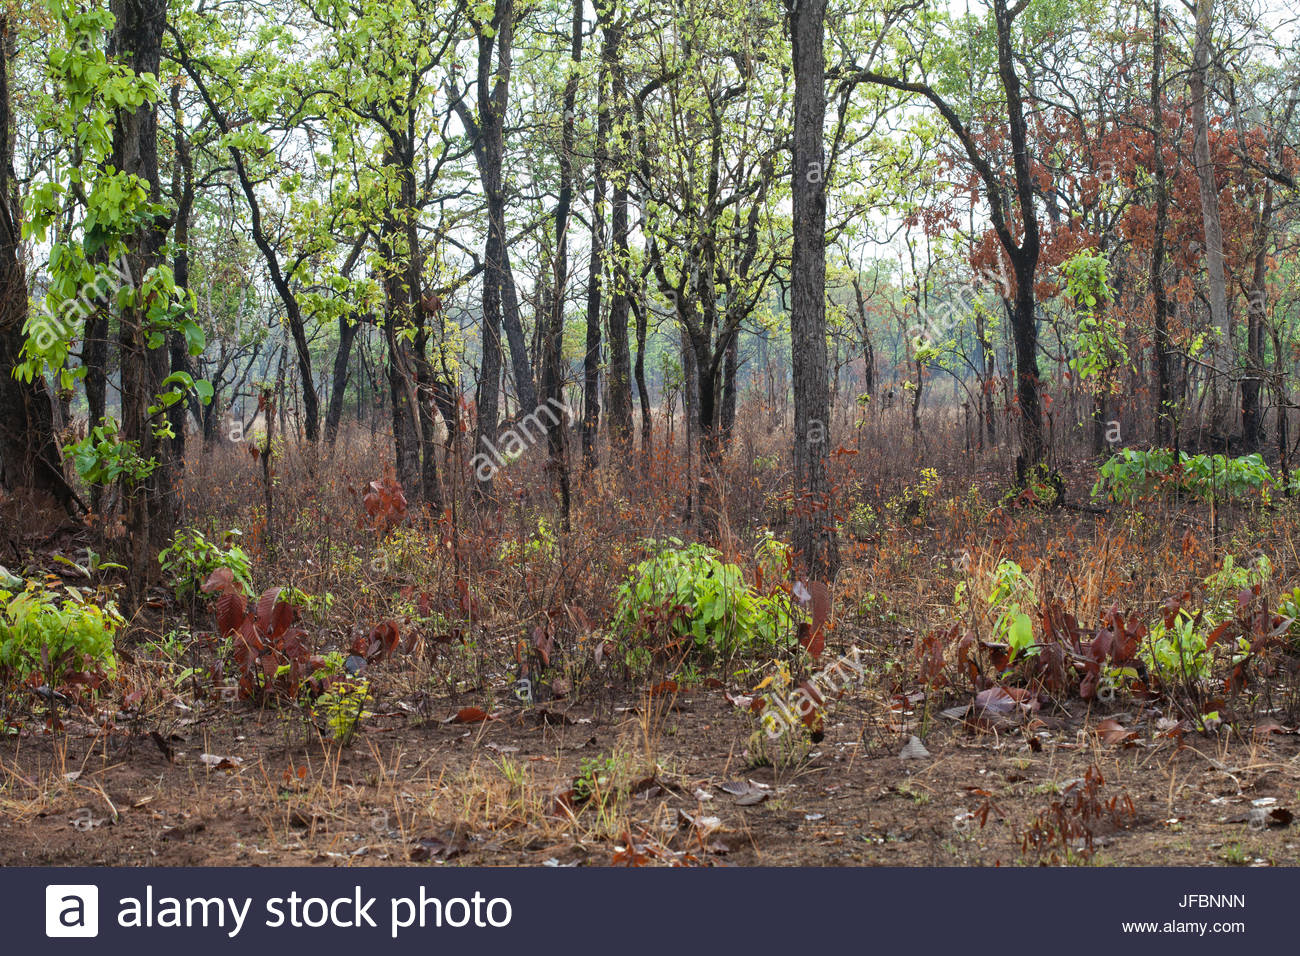 A deciduous dipterocarp forest landscape in Cambodia. - Stock Image